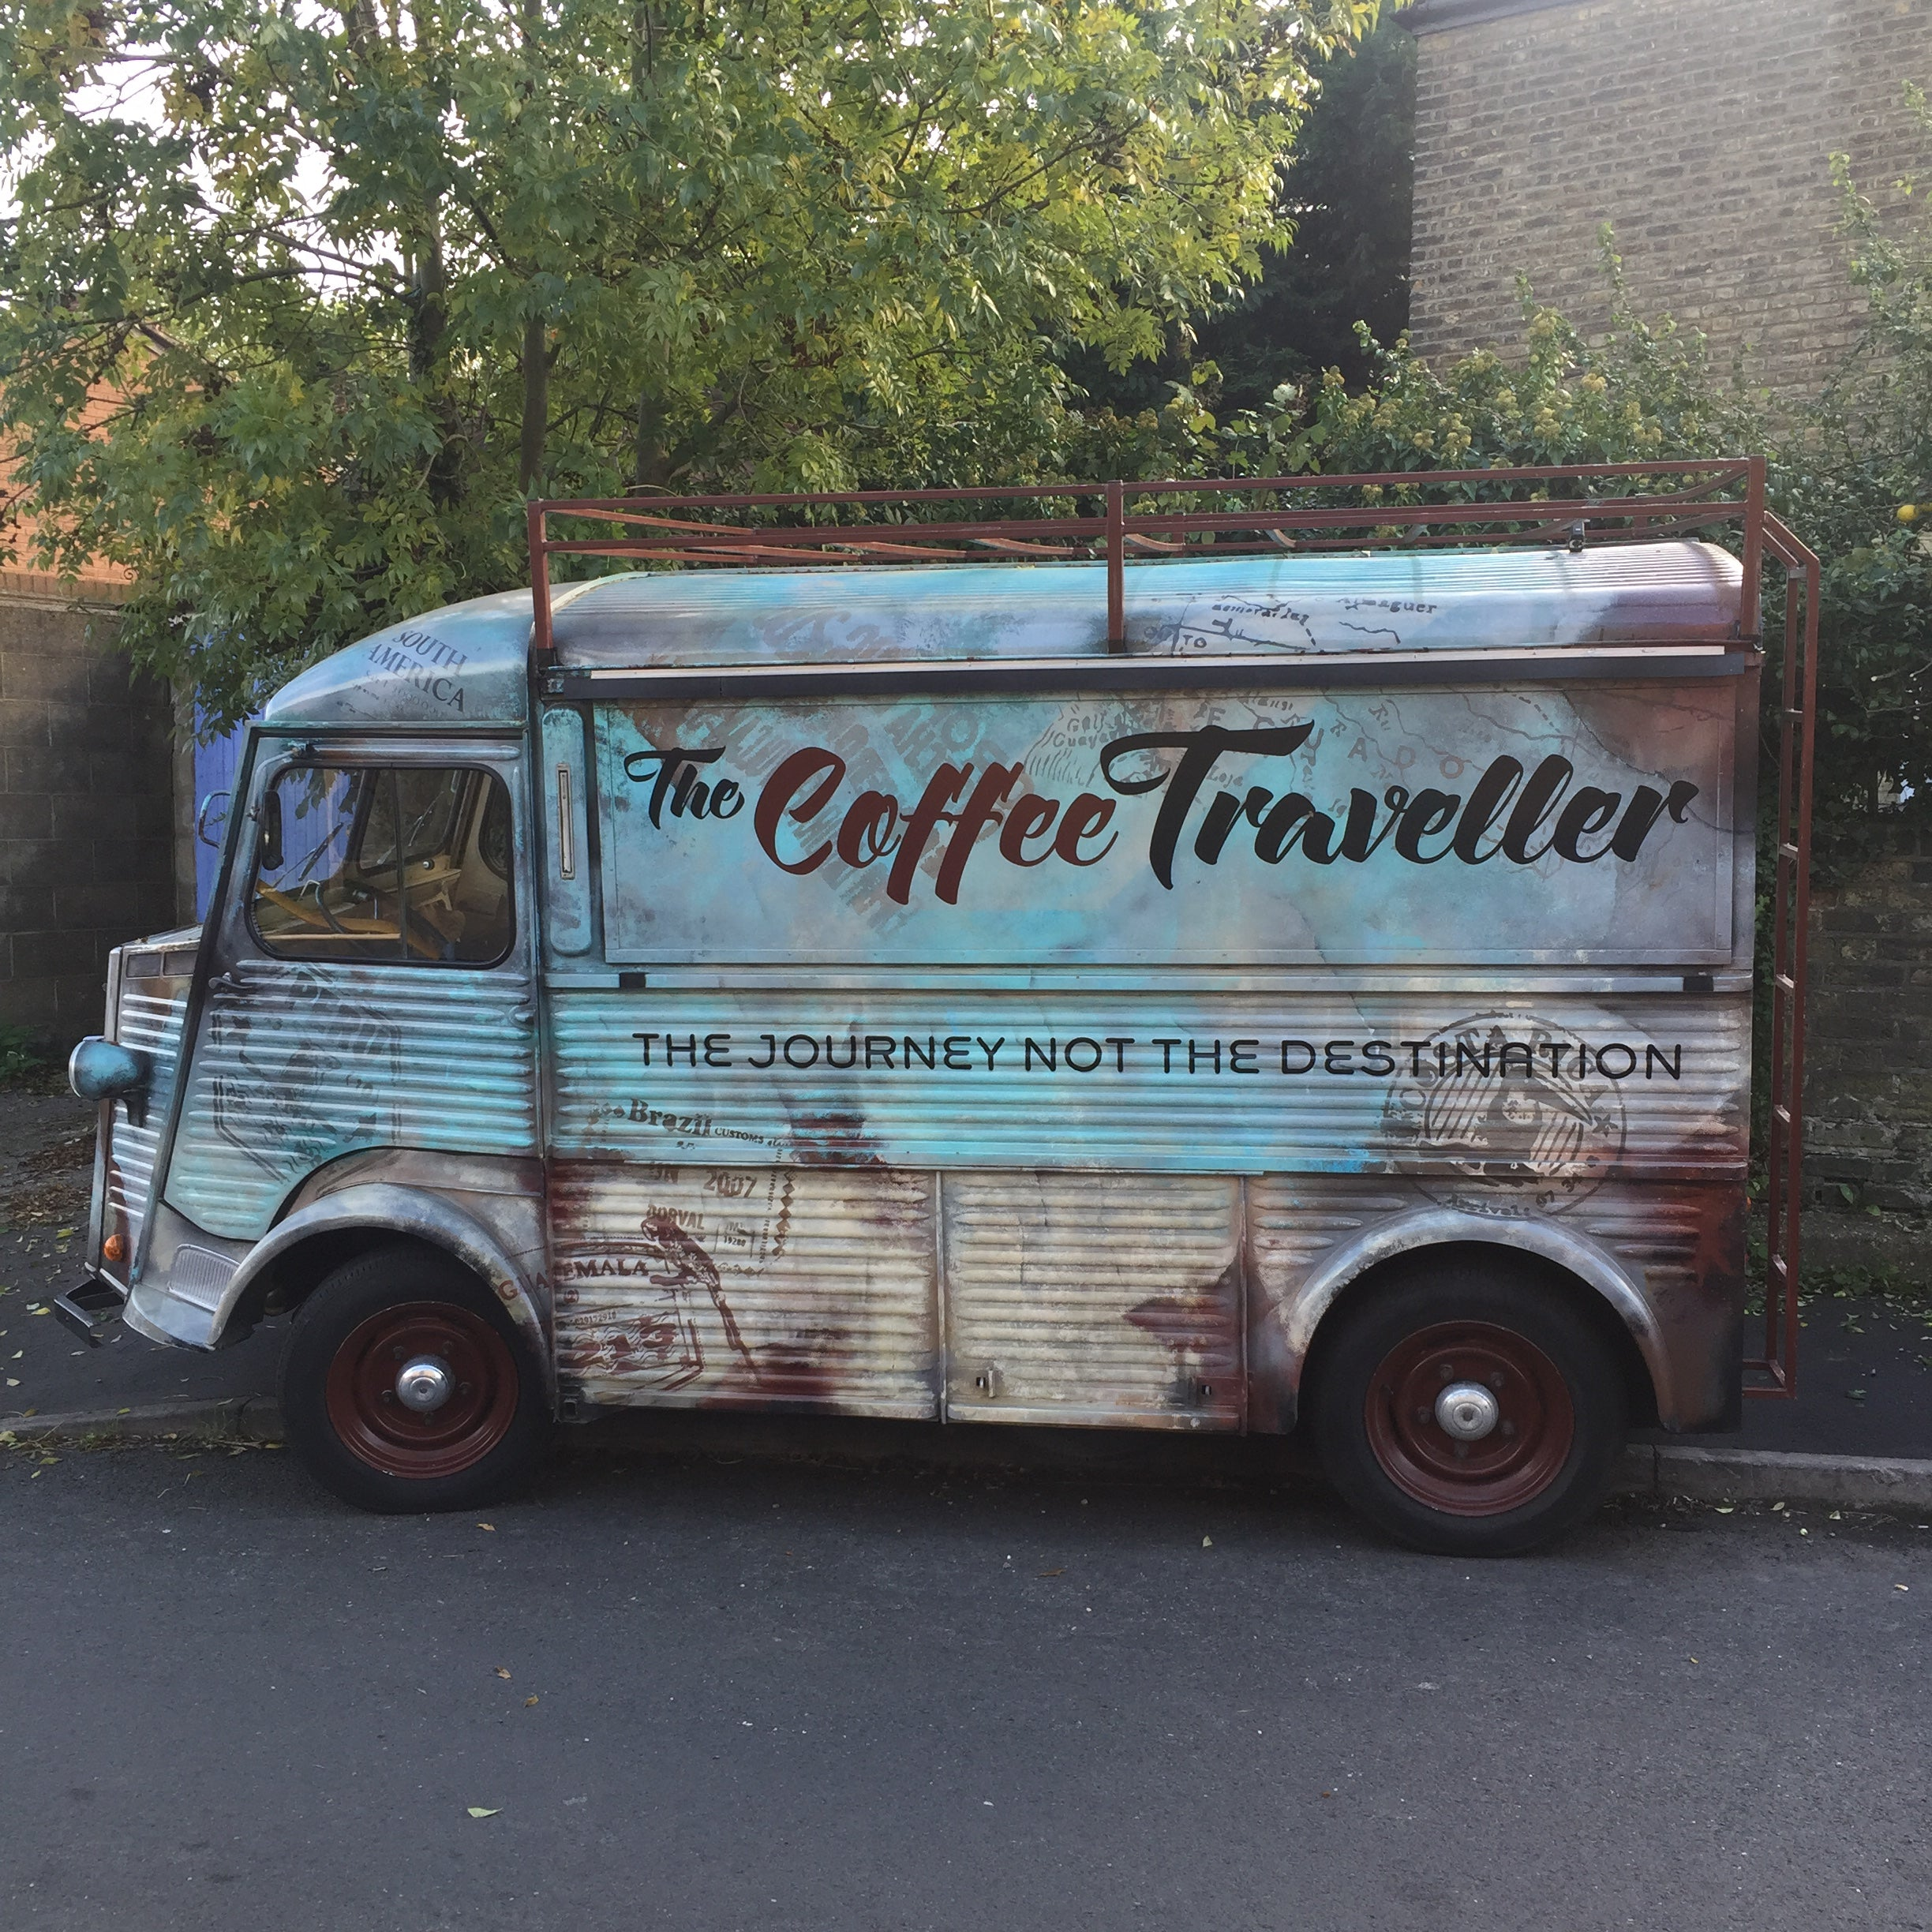 The Coffee Traveller van